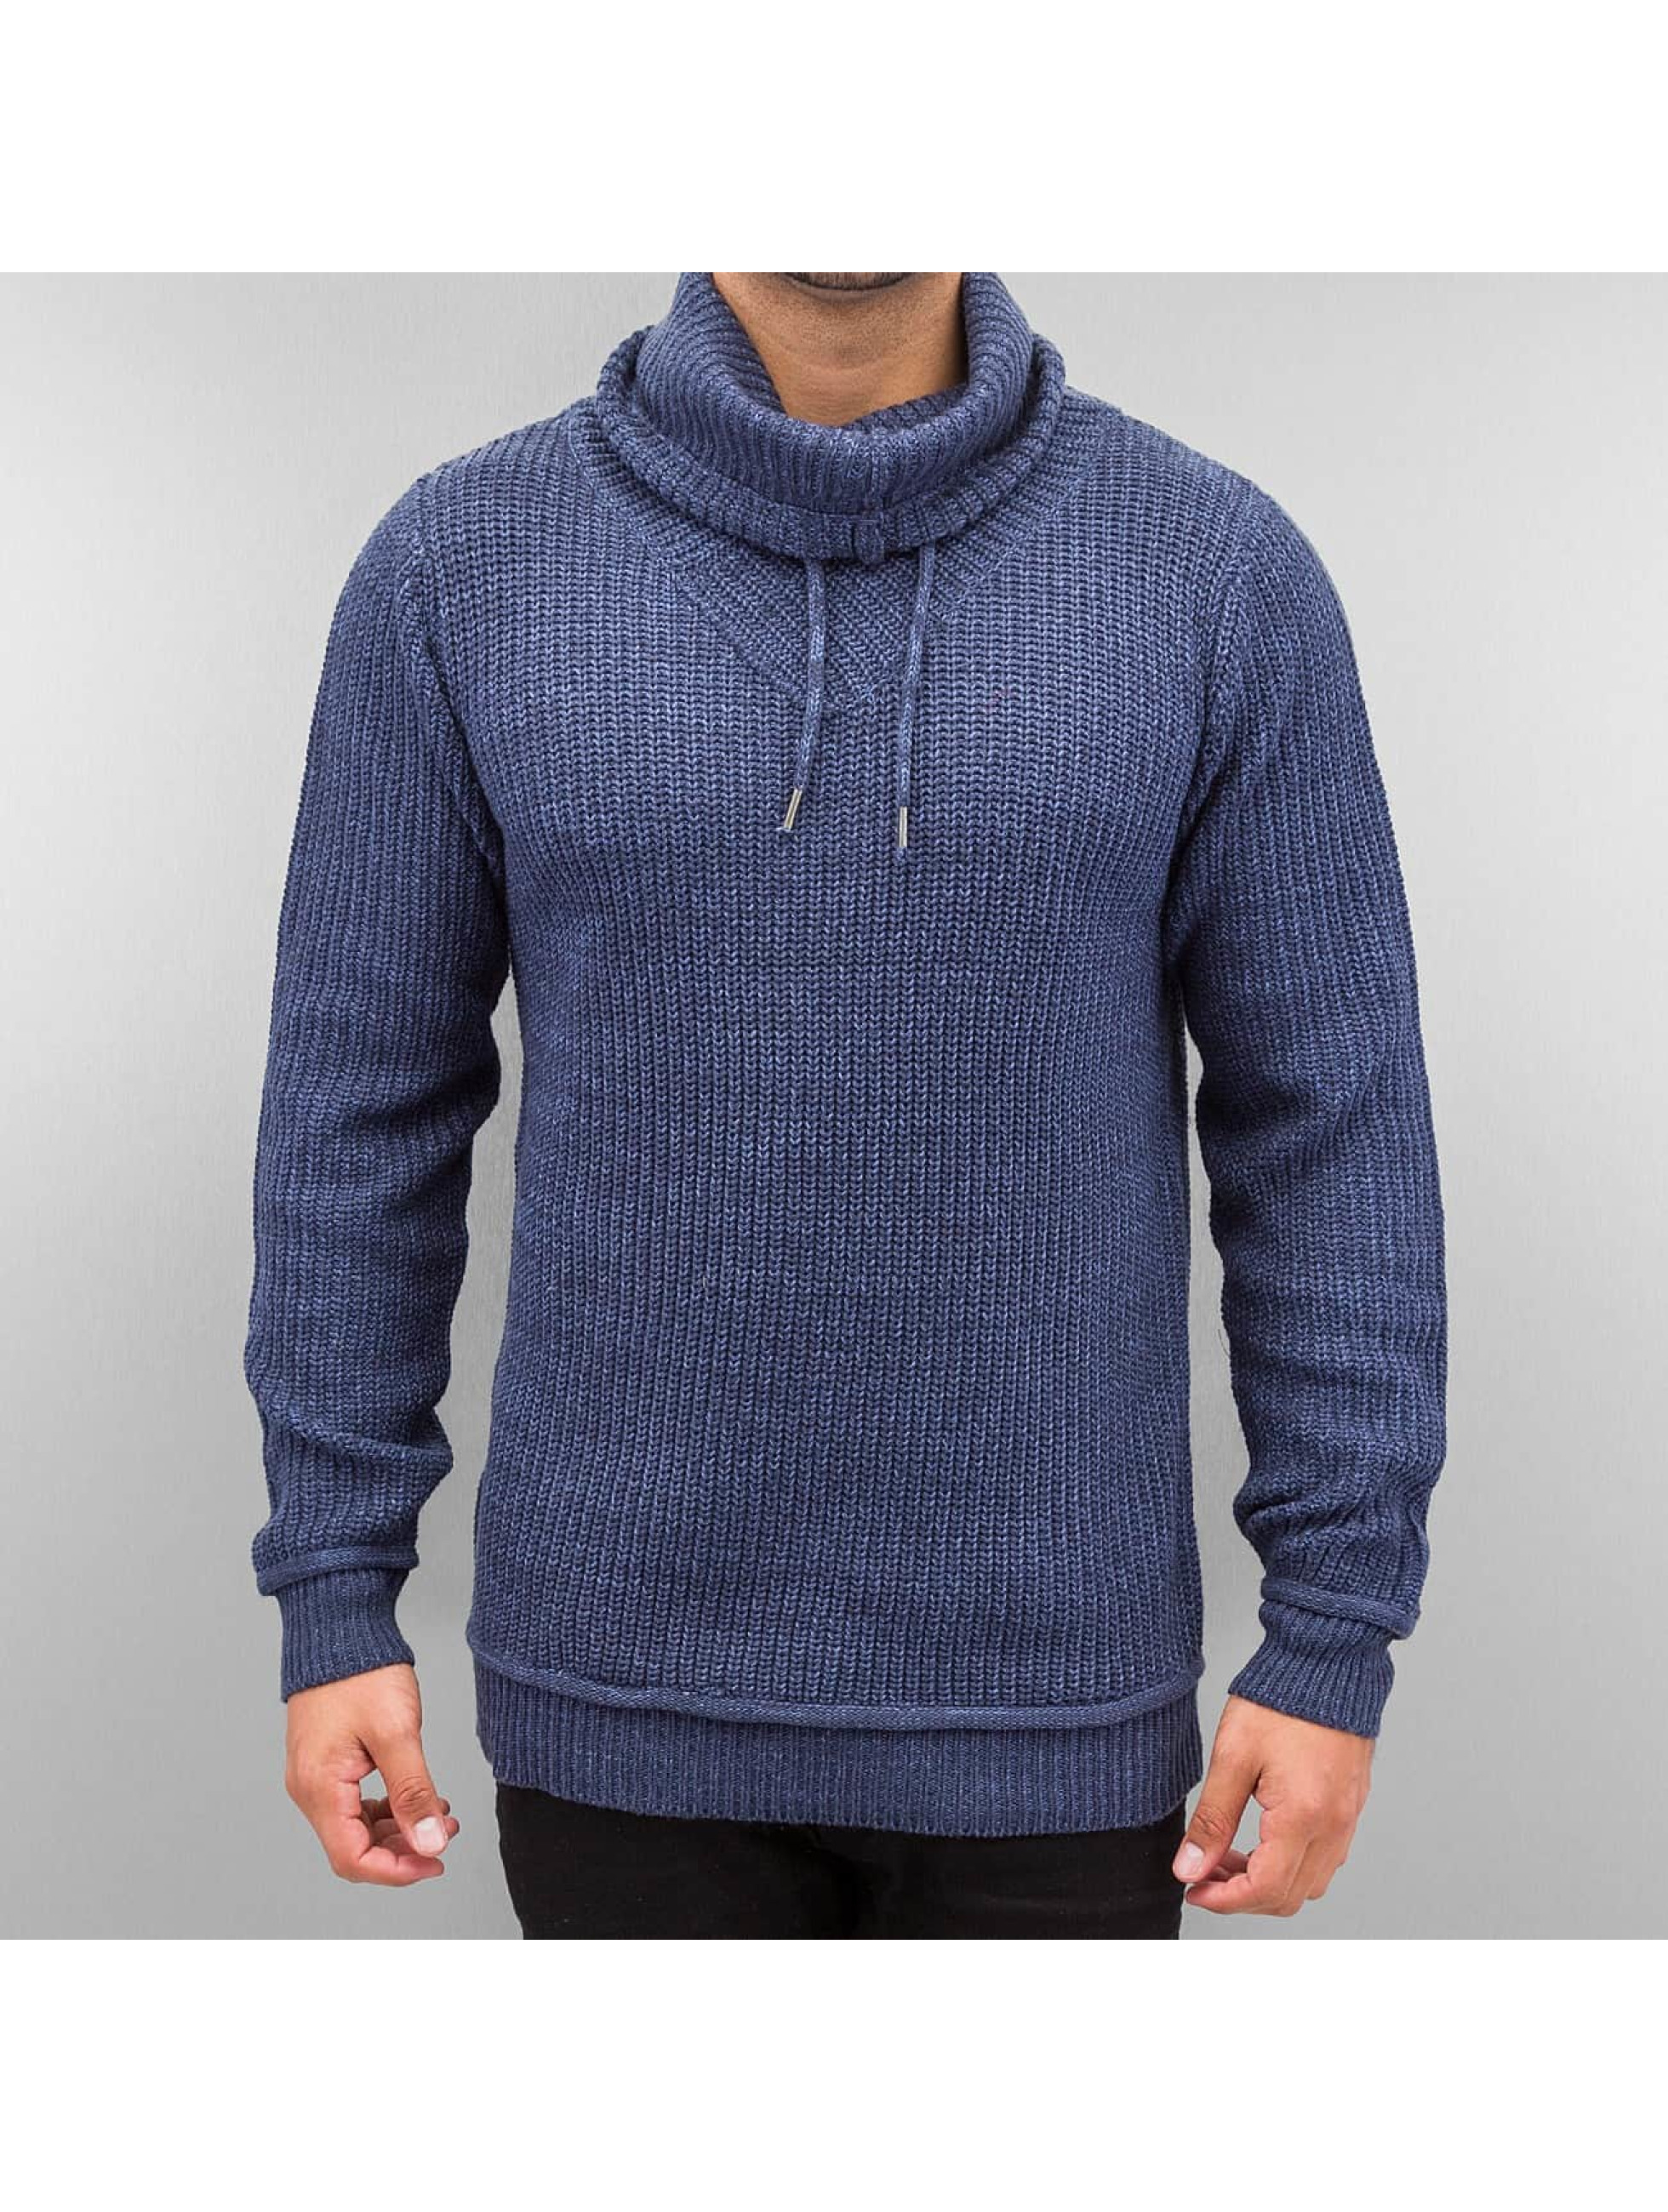 Authentic Style Männer Pullover Knit in blau